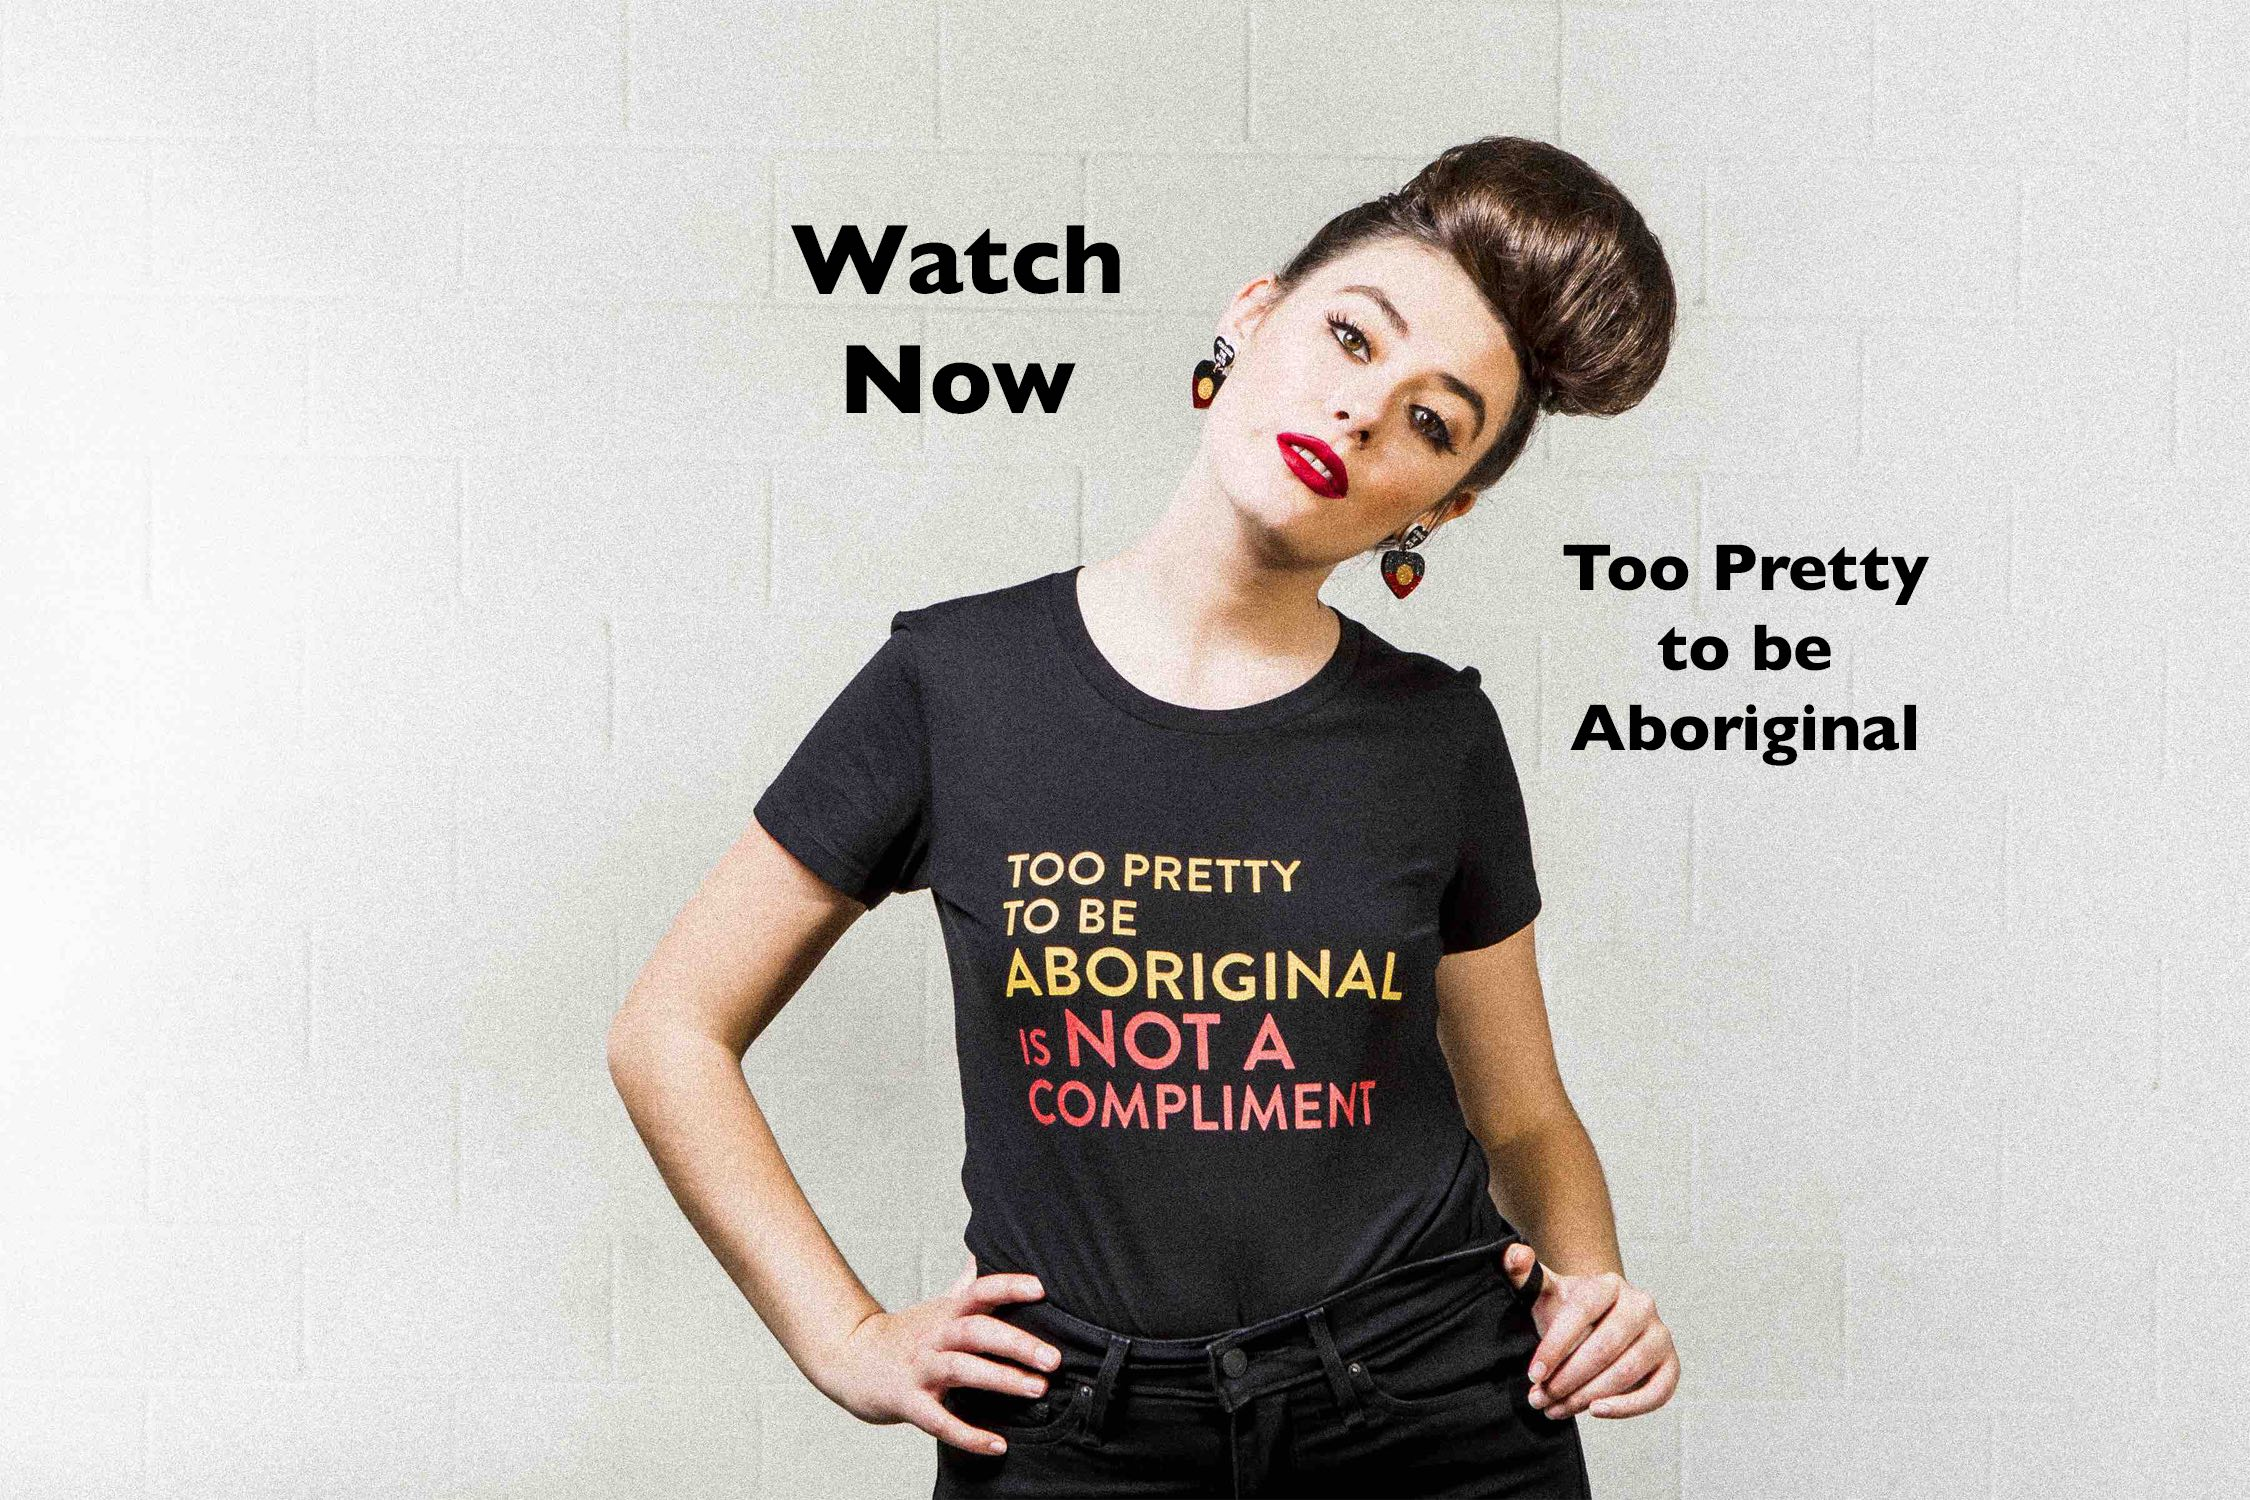 Too Pretty to be Aboriginal